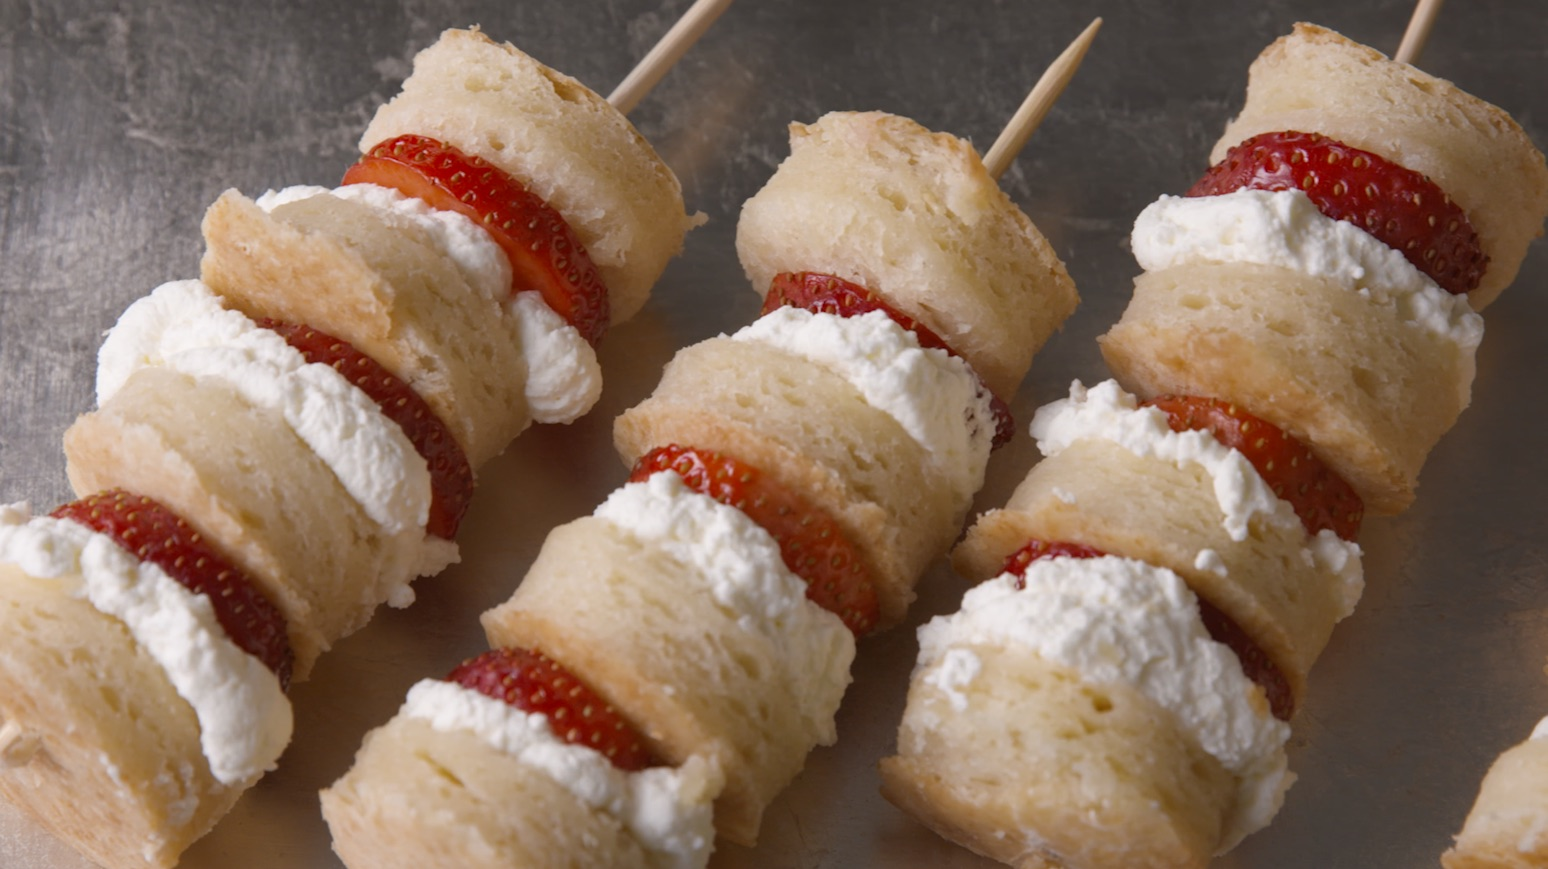 best strawberry shortcake skewers recipe how to make strawberry shortcake skewers - Easy Valentine Dinner Recipes